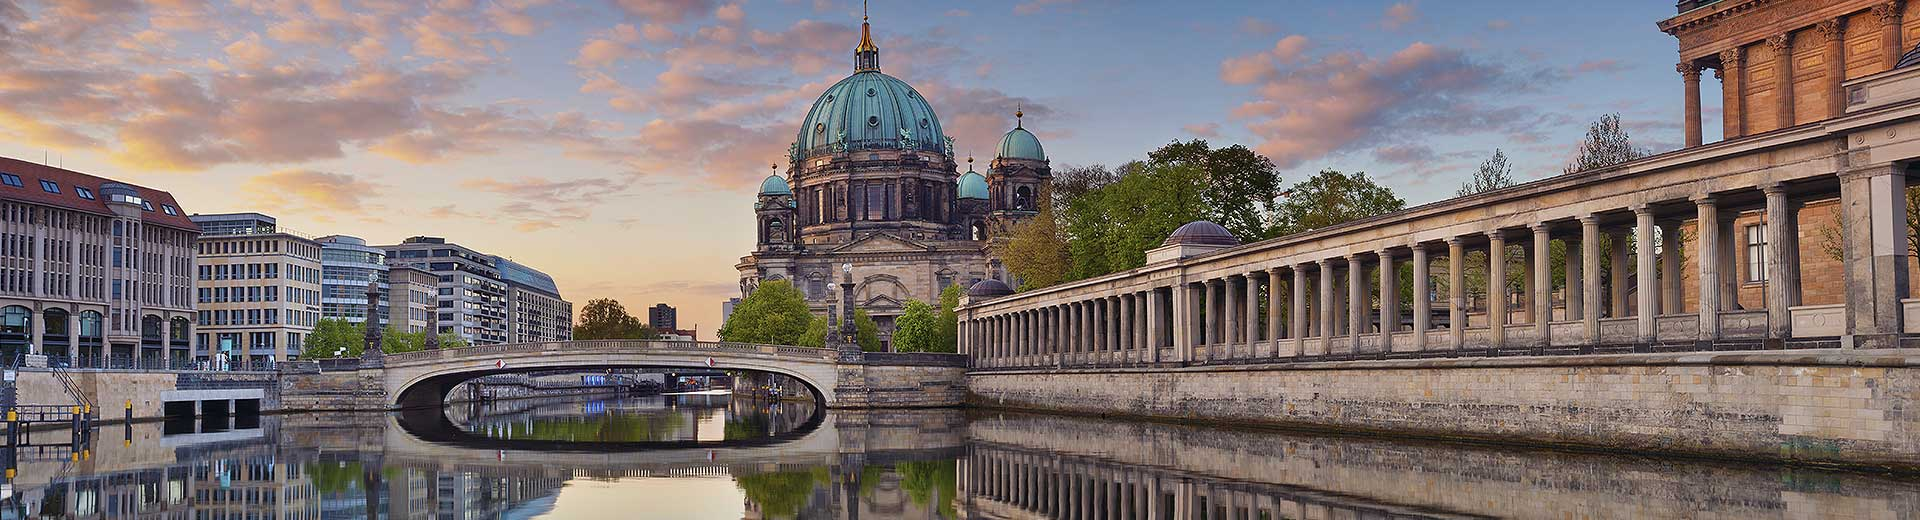 Gruppenreise Berlin - Package Gruppen Select Flug